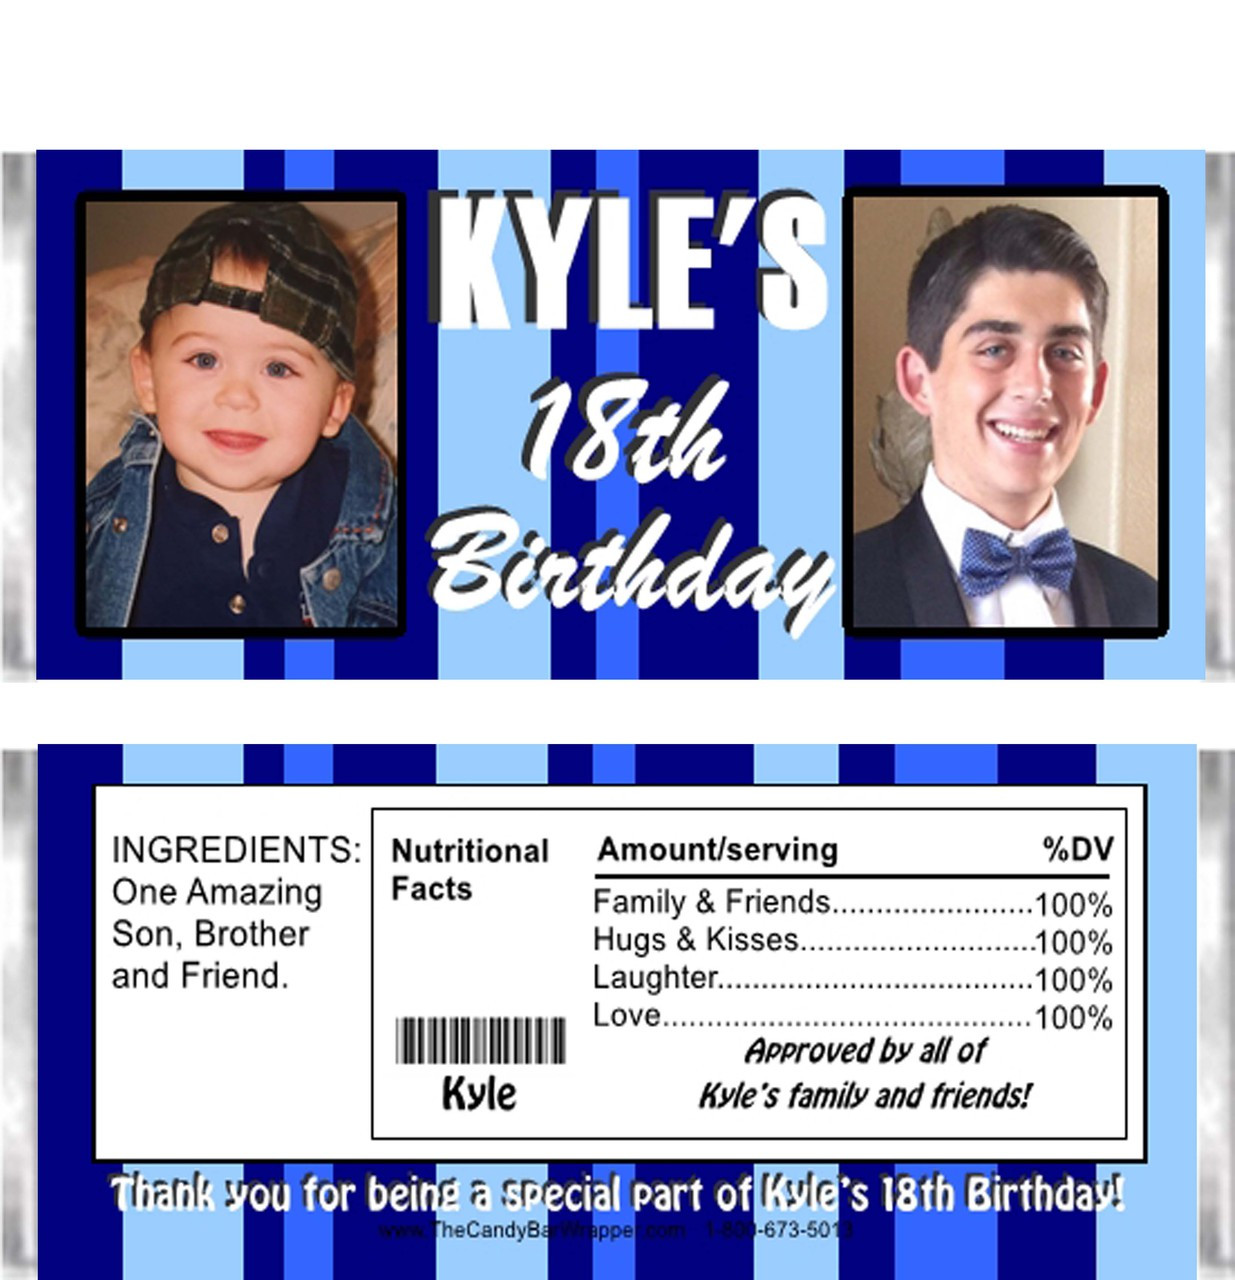 18th Birthday Birthday Party Favor Gumball Candy: 18th Birthday Candy Wrappers As 18th Birthday Party Favors